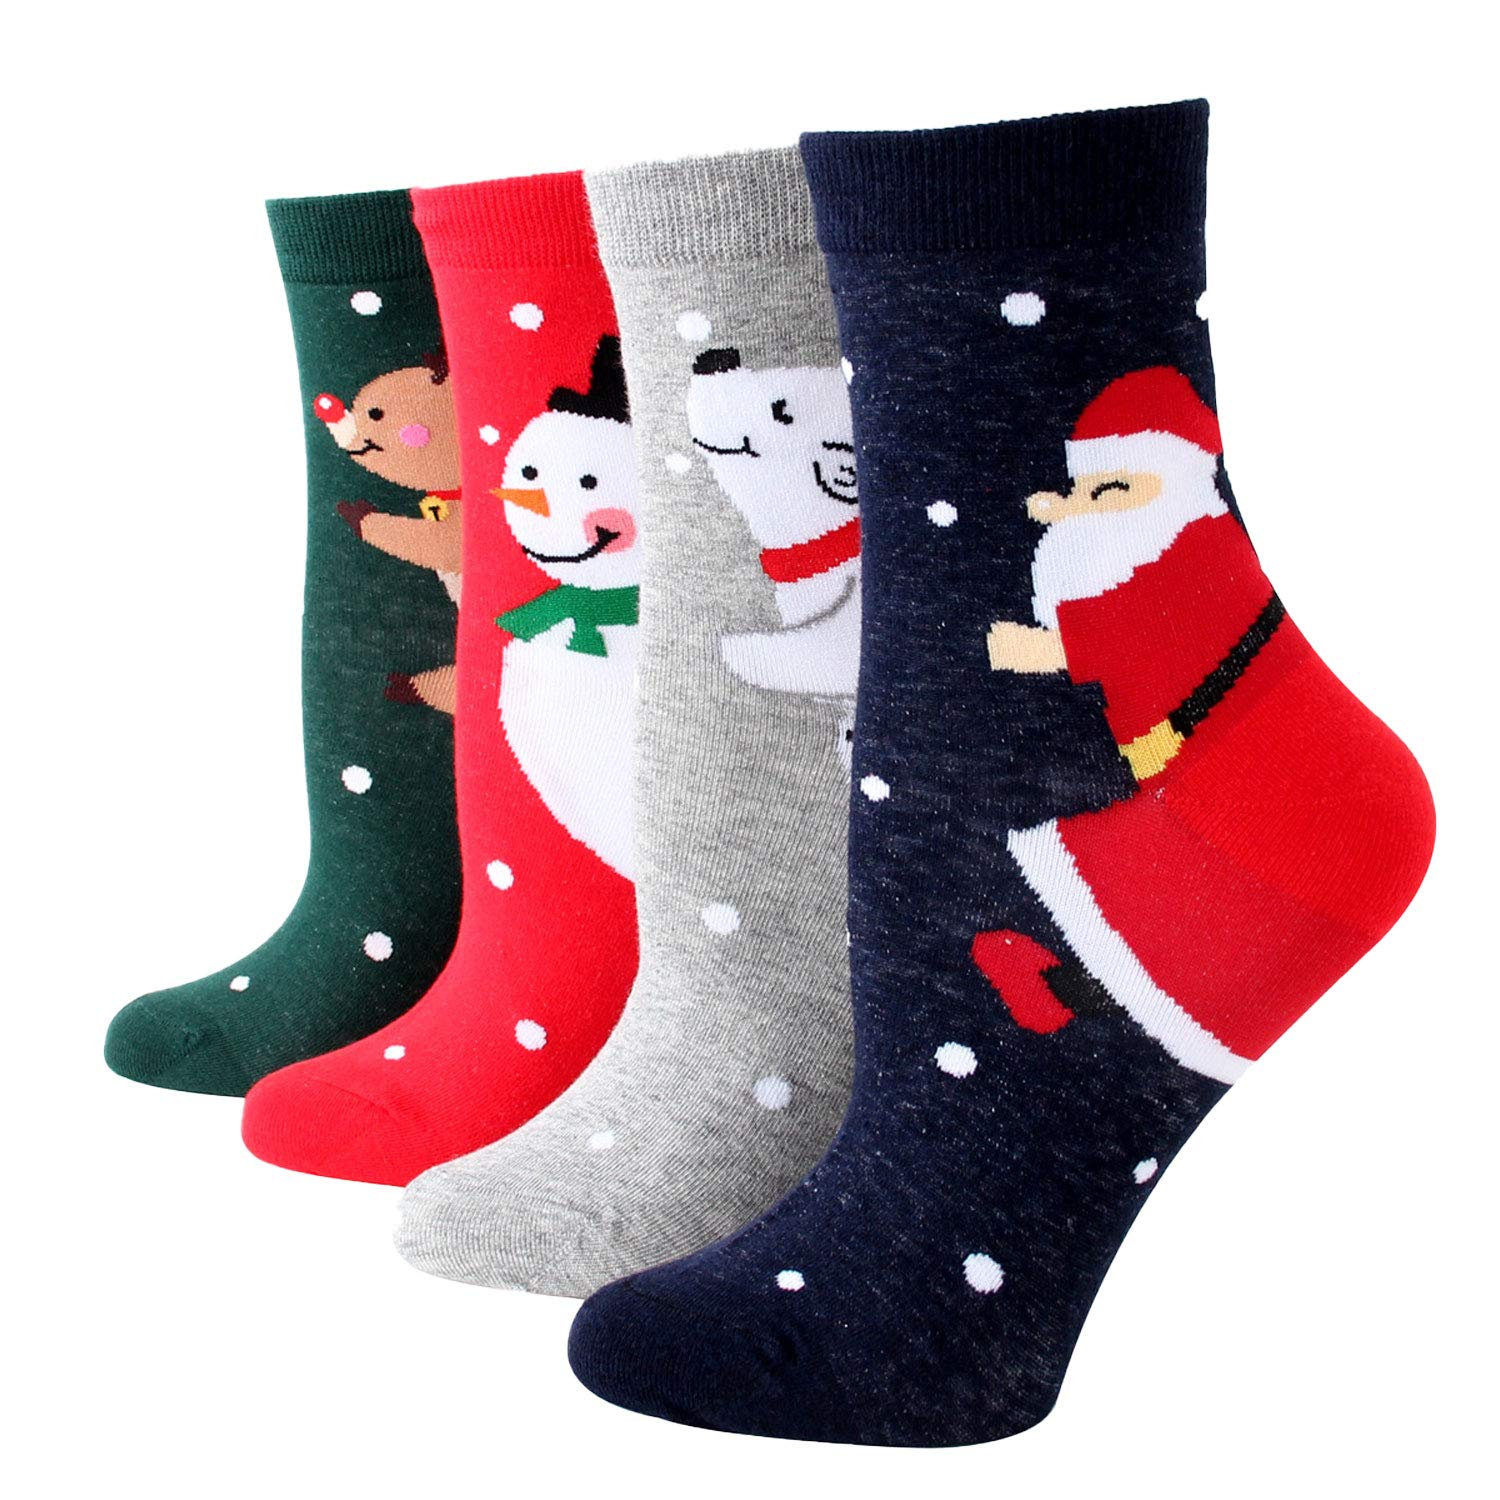 Wowsoul Funny Socks for Women Novelty Funky Cute Cartoon Socks 4Pack 5Pack